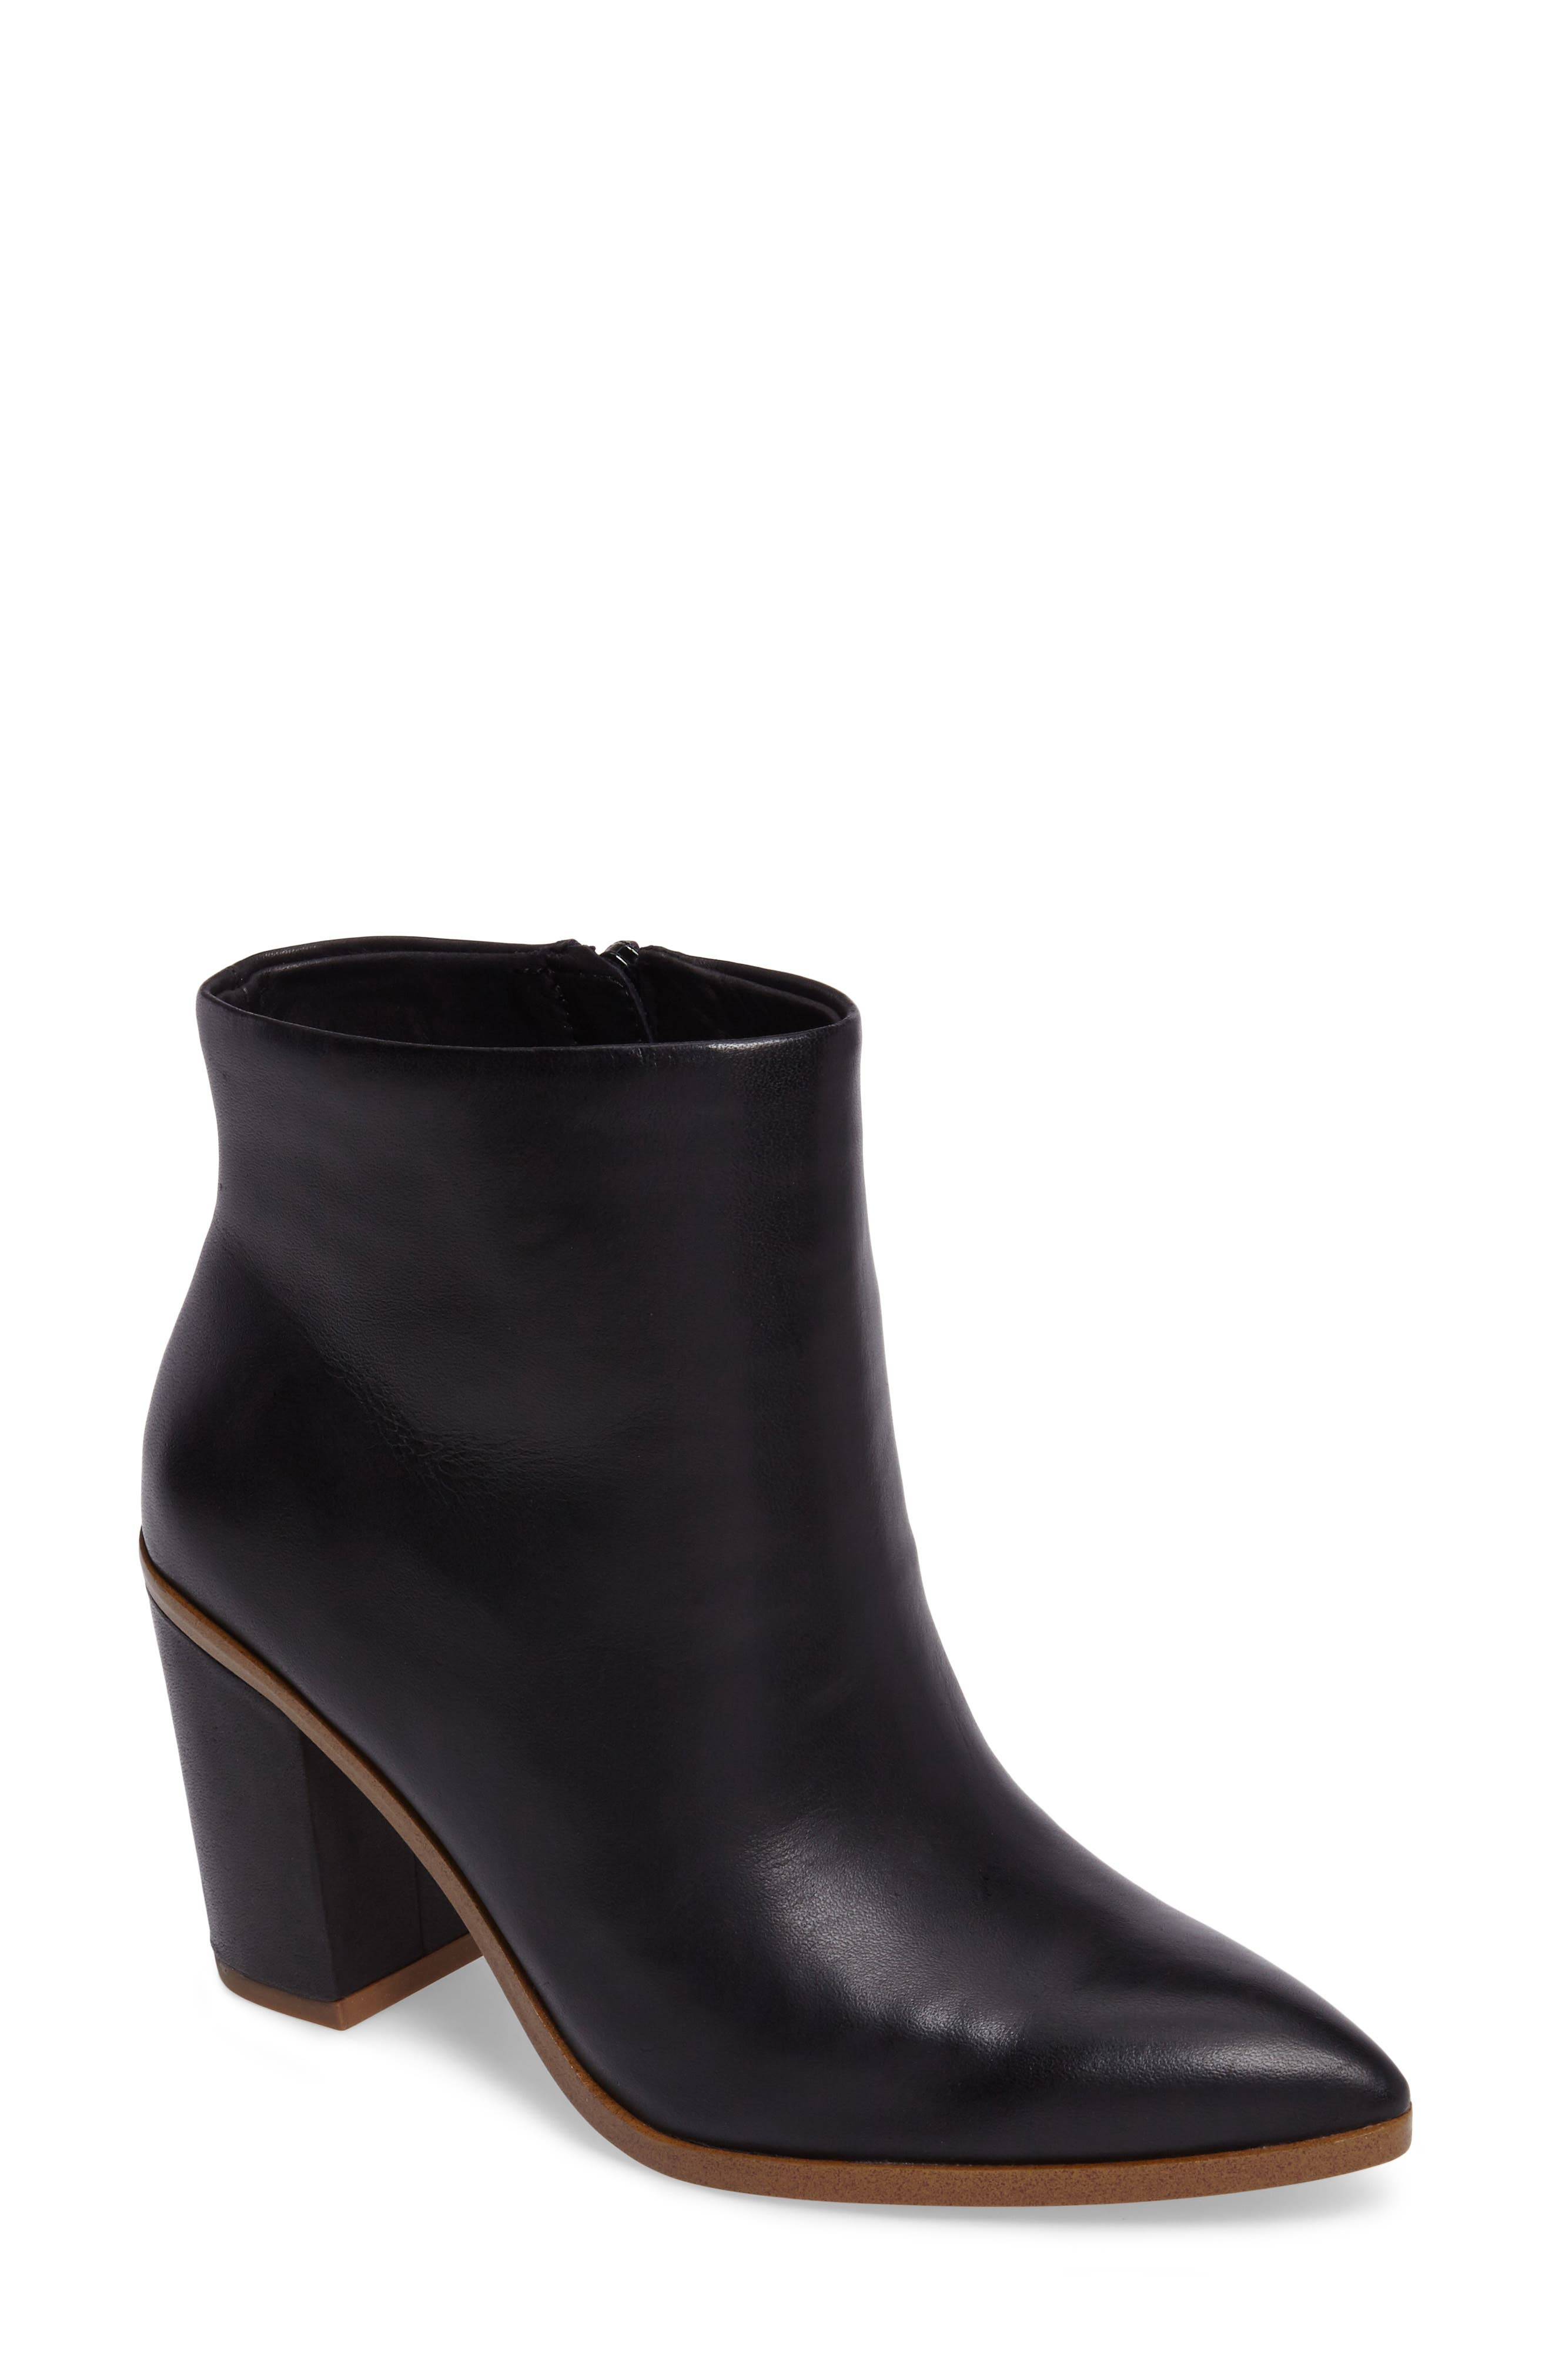 Main Image - 1.STATE Paven Pointy Toe Bootie (Women)